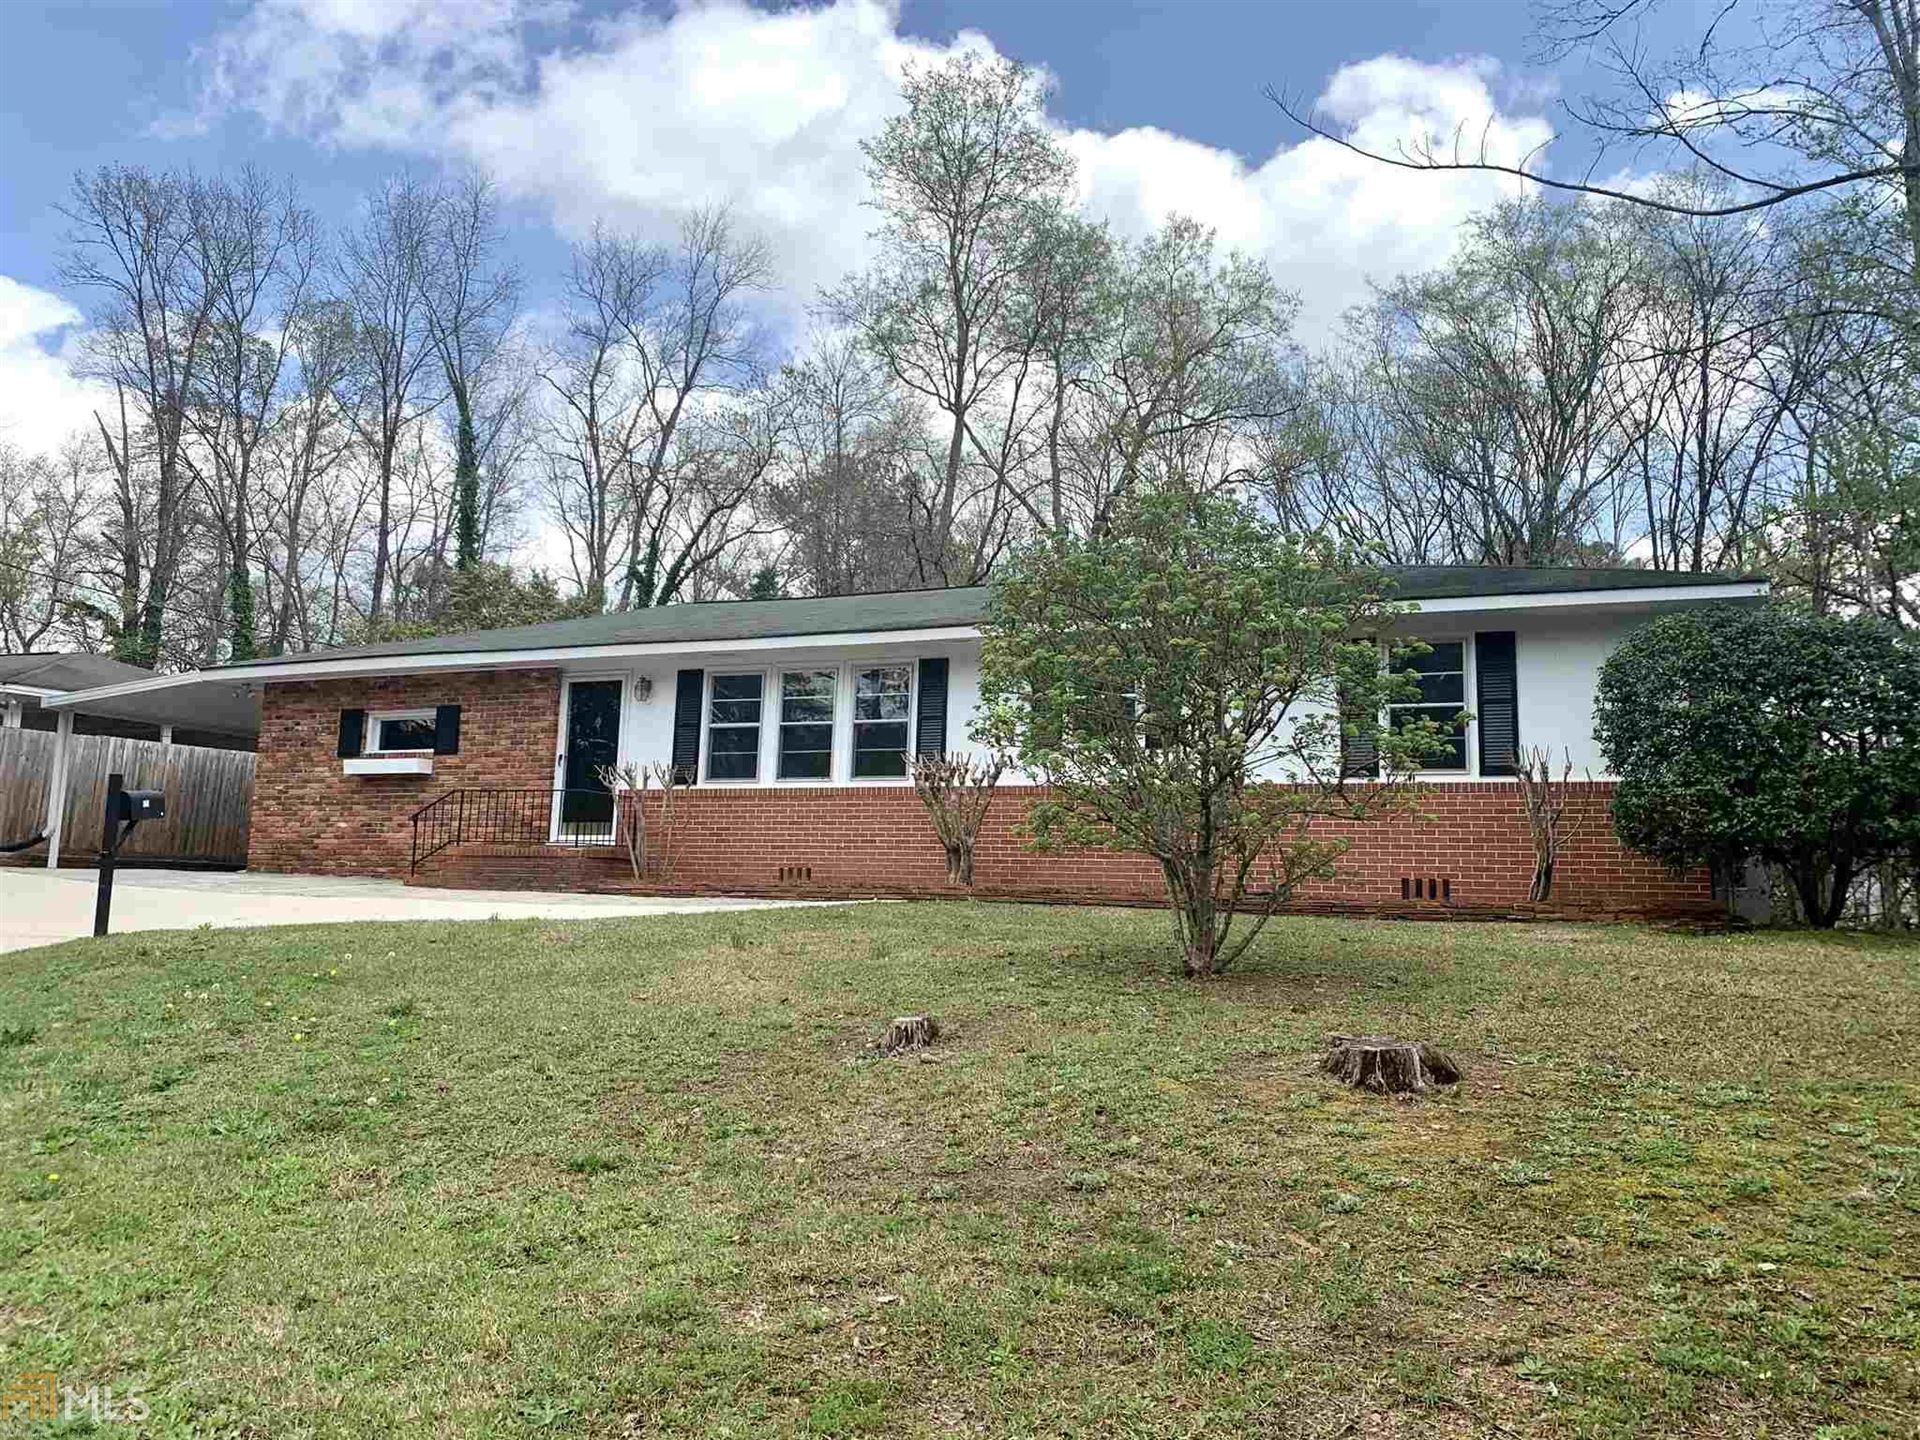 723 Forest Hill Rd, Macon, GA 31210 - MLS#: 8944923